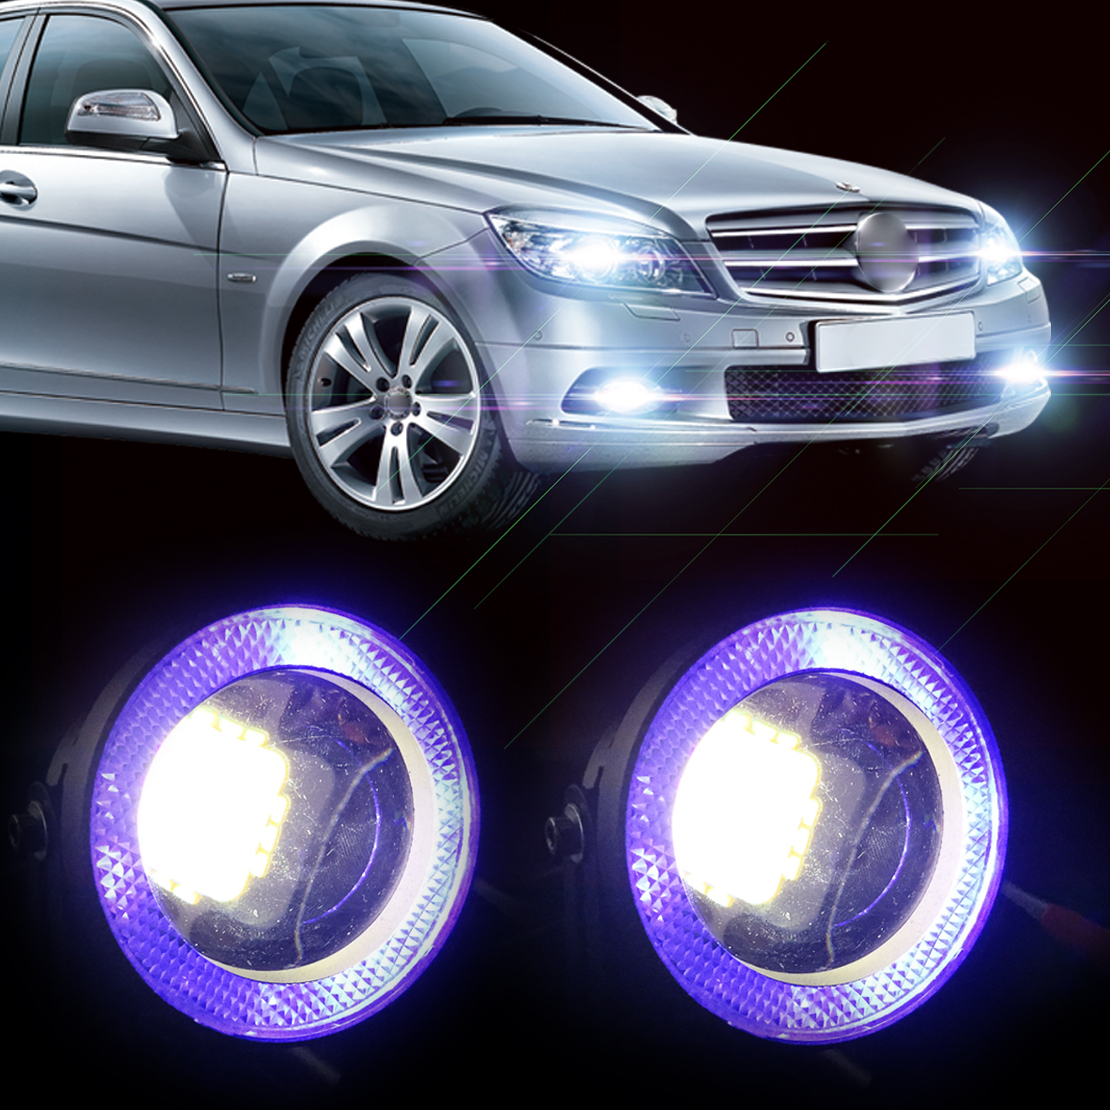 2pcs 2.5 10W White LED Projector Fog Lens DRL Driving Light with Blue LED Angel Eye Halo Ring For Ford BMW Kia Honda VW Audi<br><br>Aliexpress